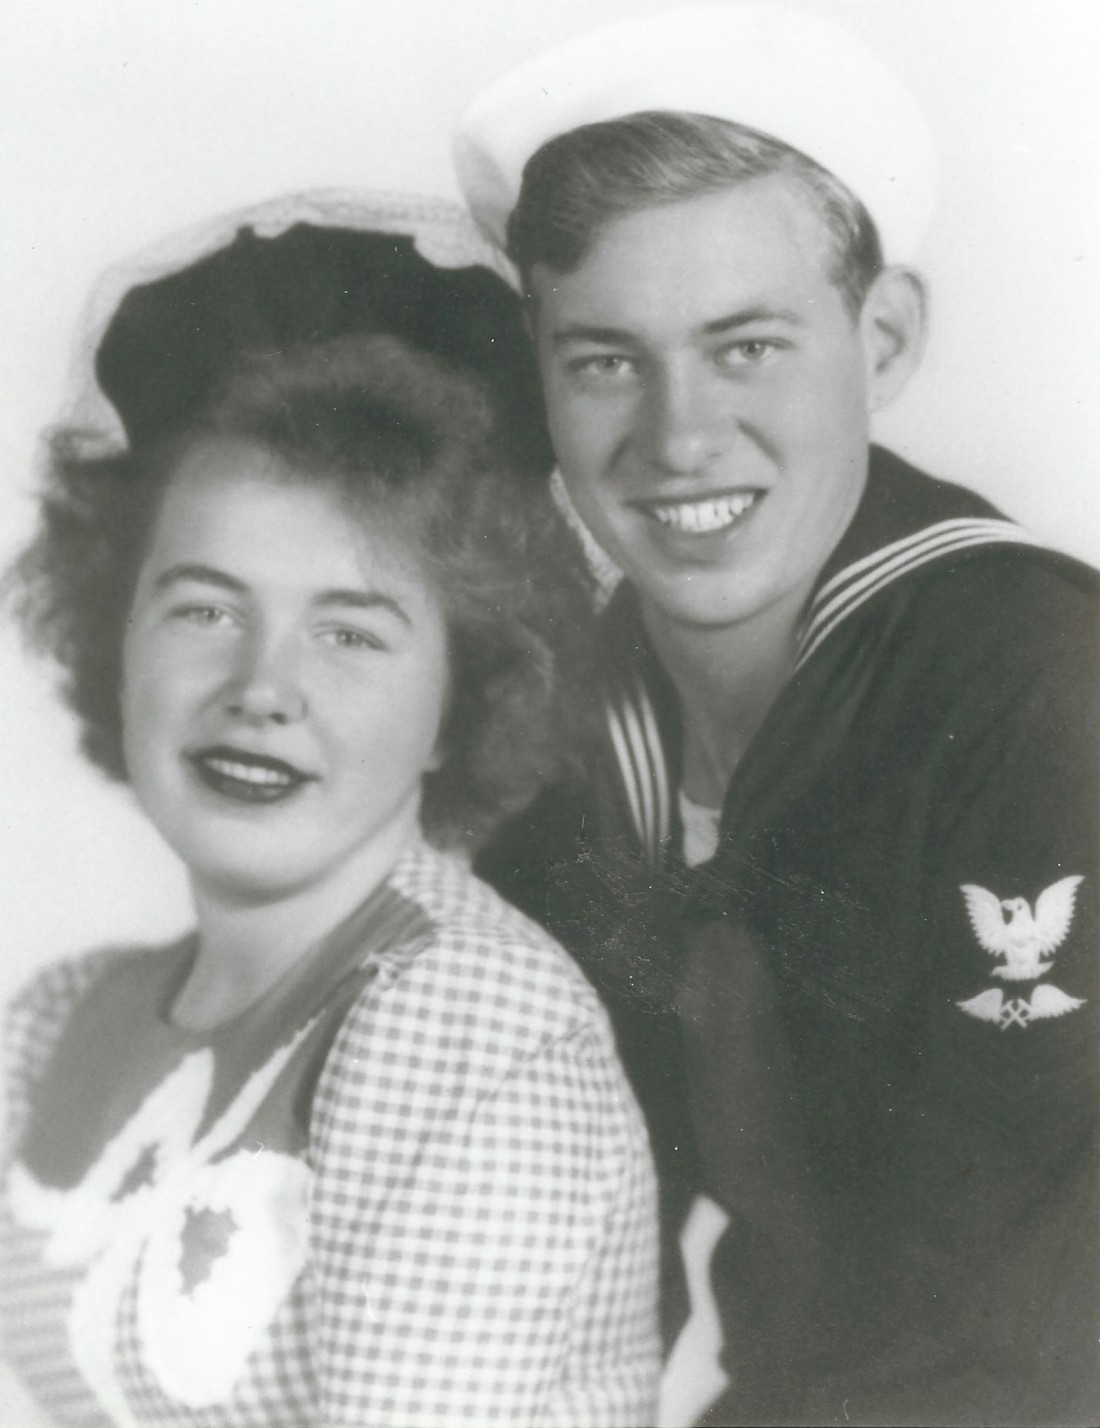 My parents - George and Barbara - 1945